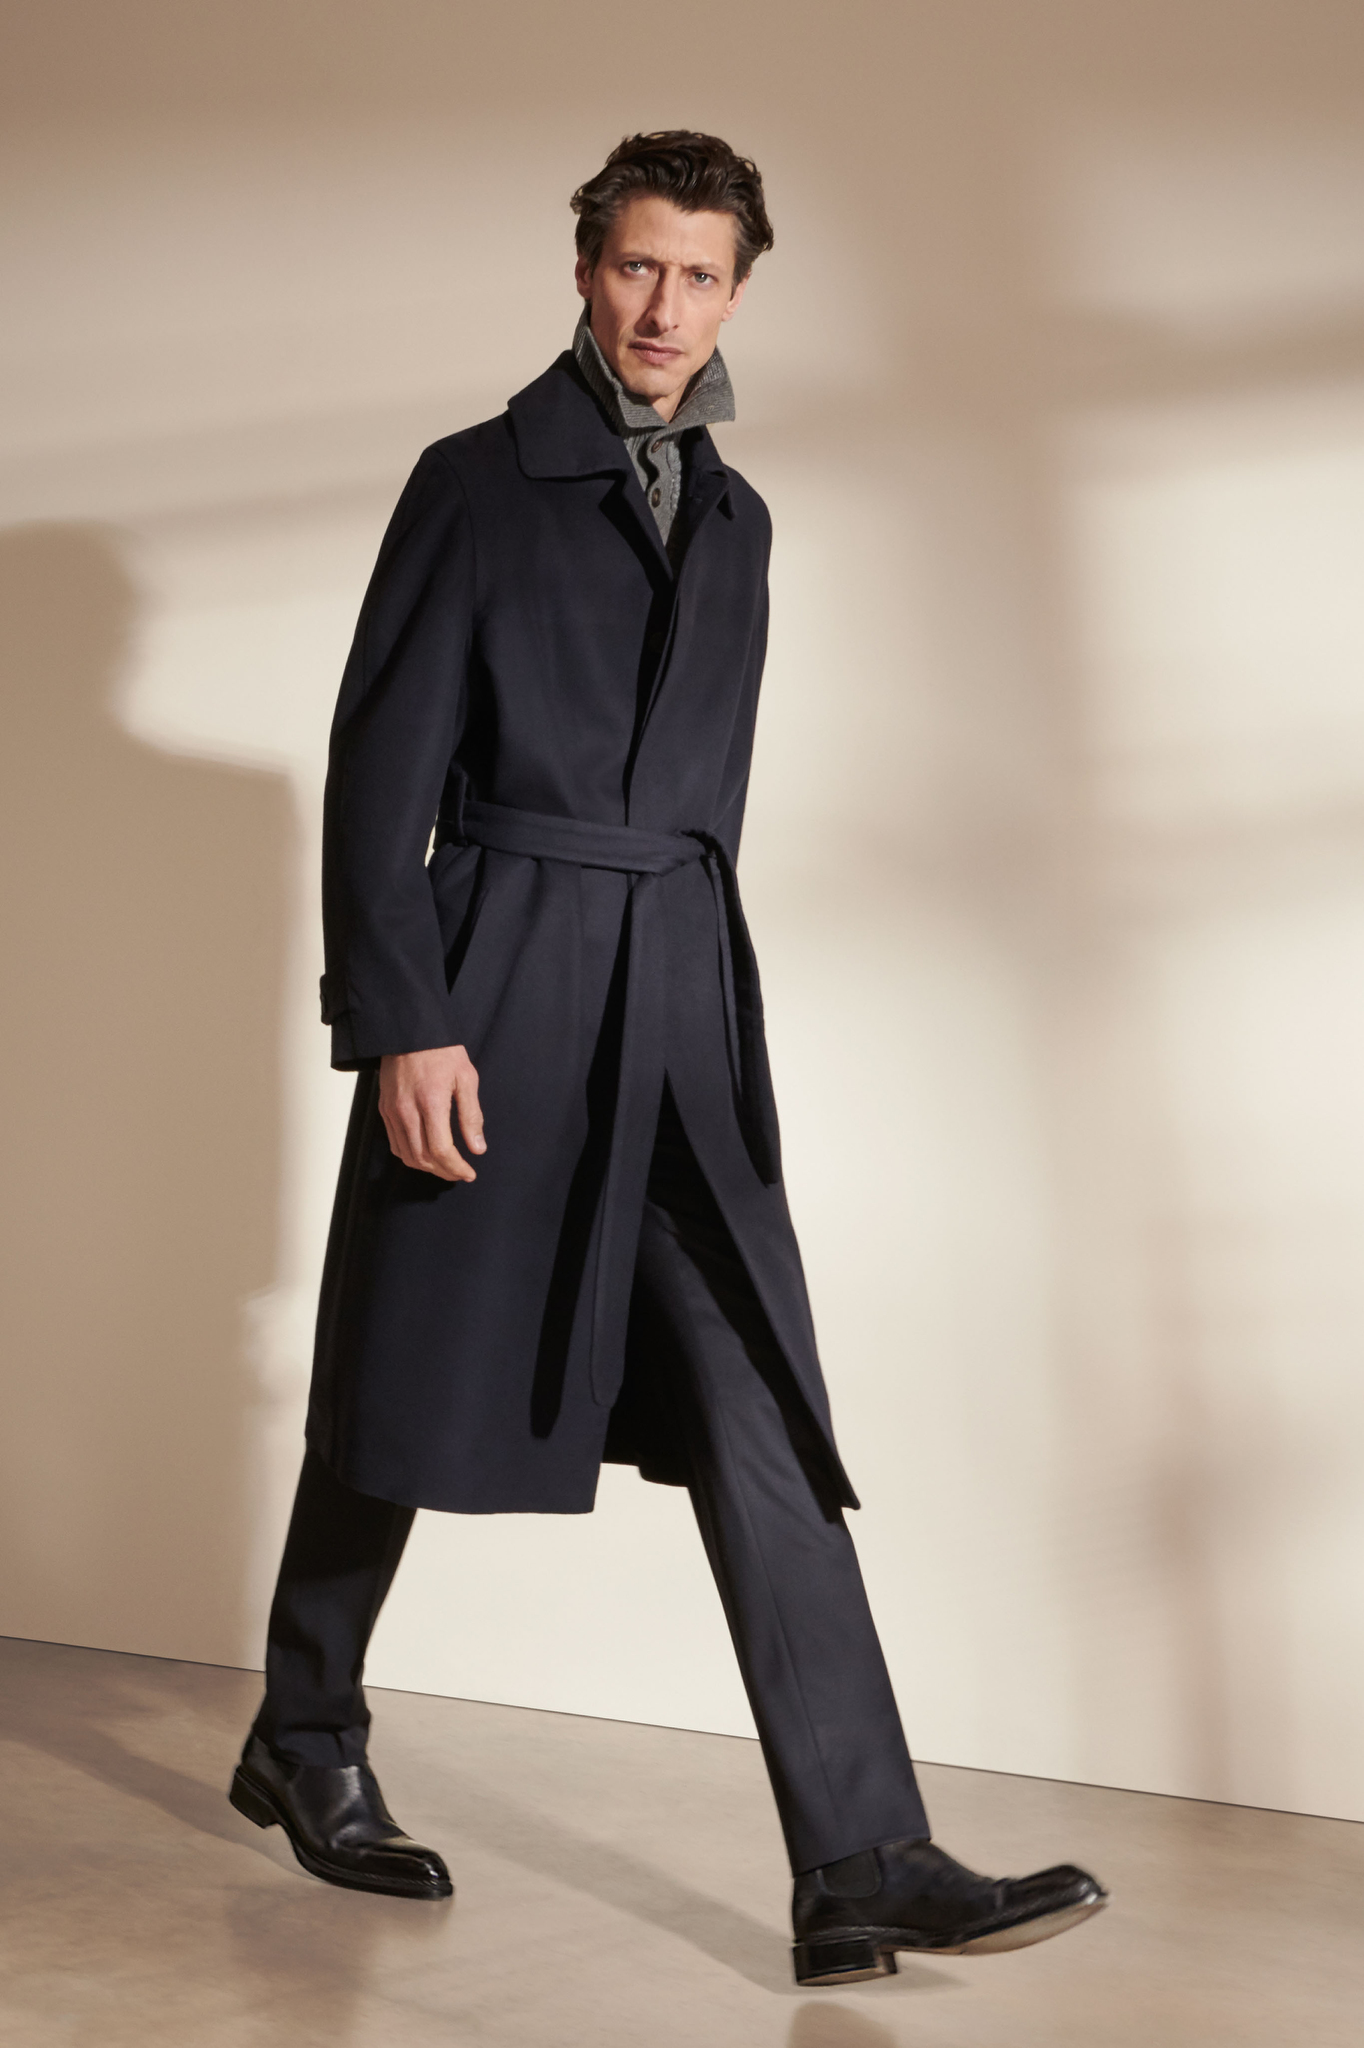 Brioni Men's Fall 2021